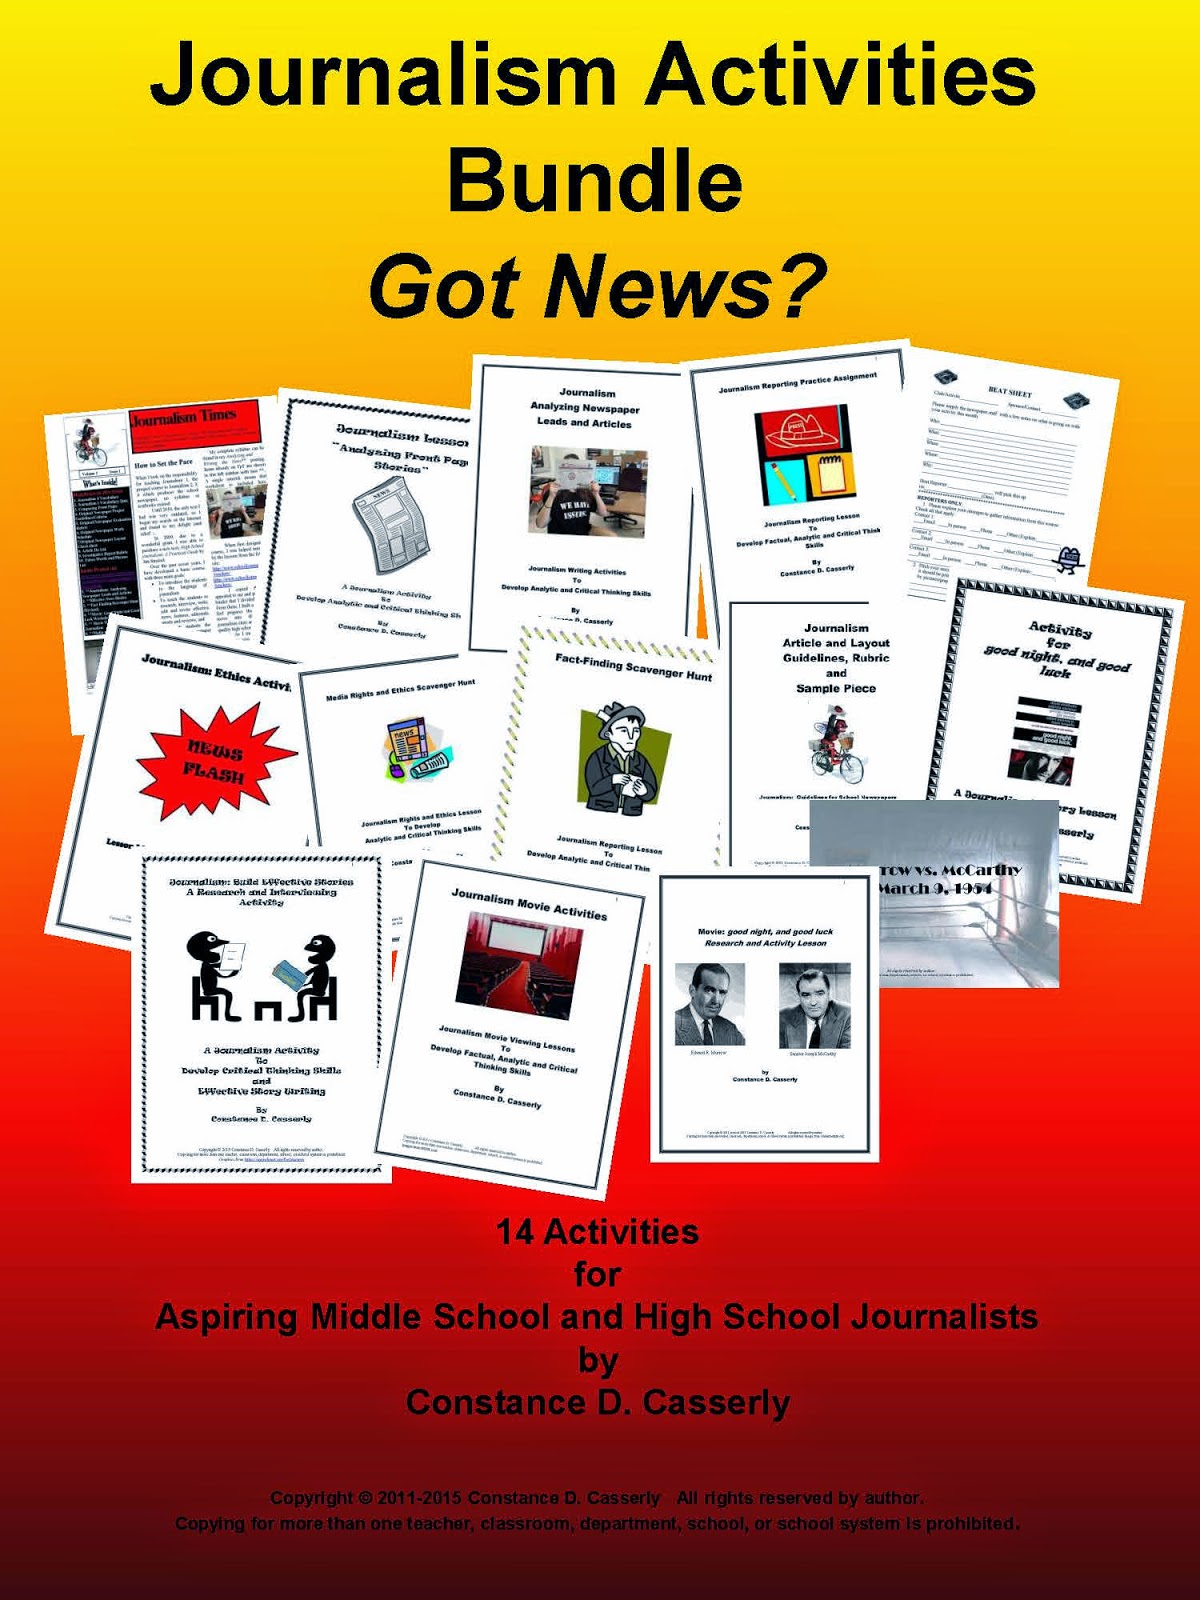 Journalism Activities Bundle